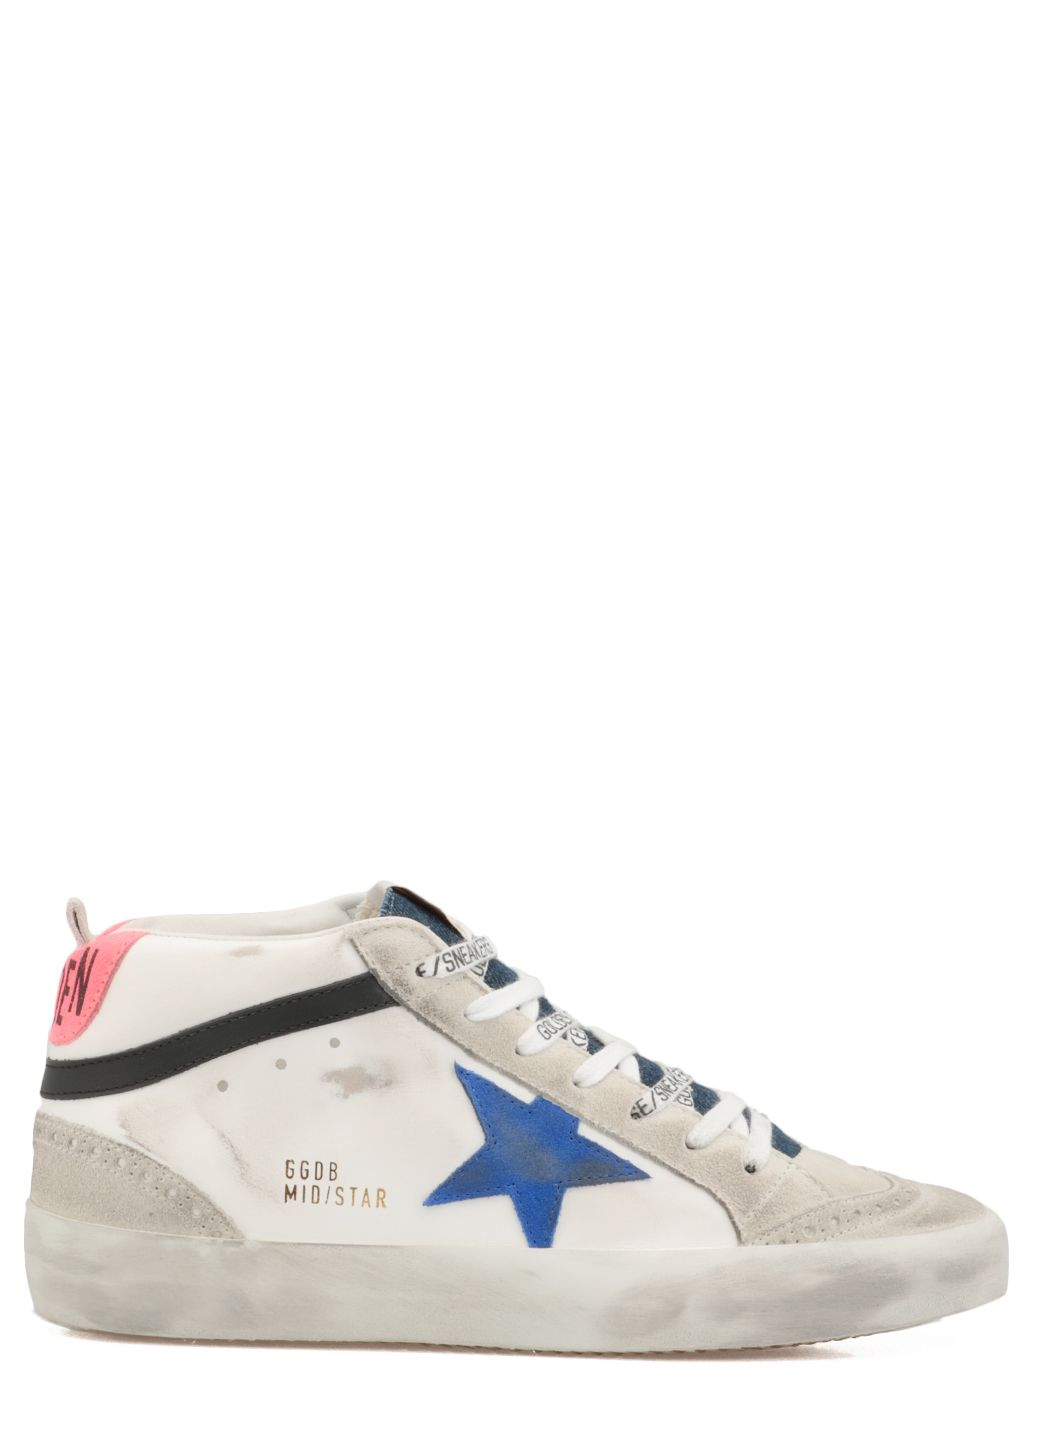 Mid star classic sneakers